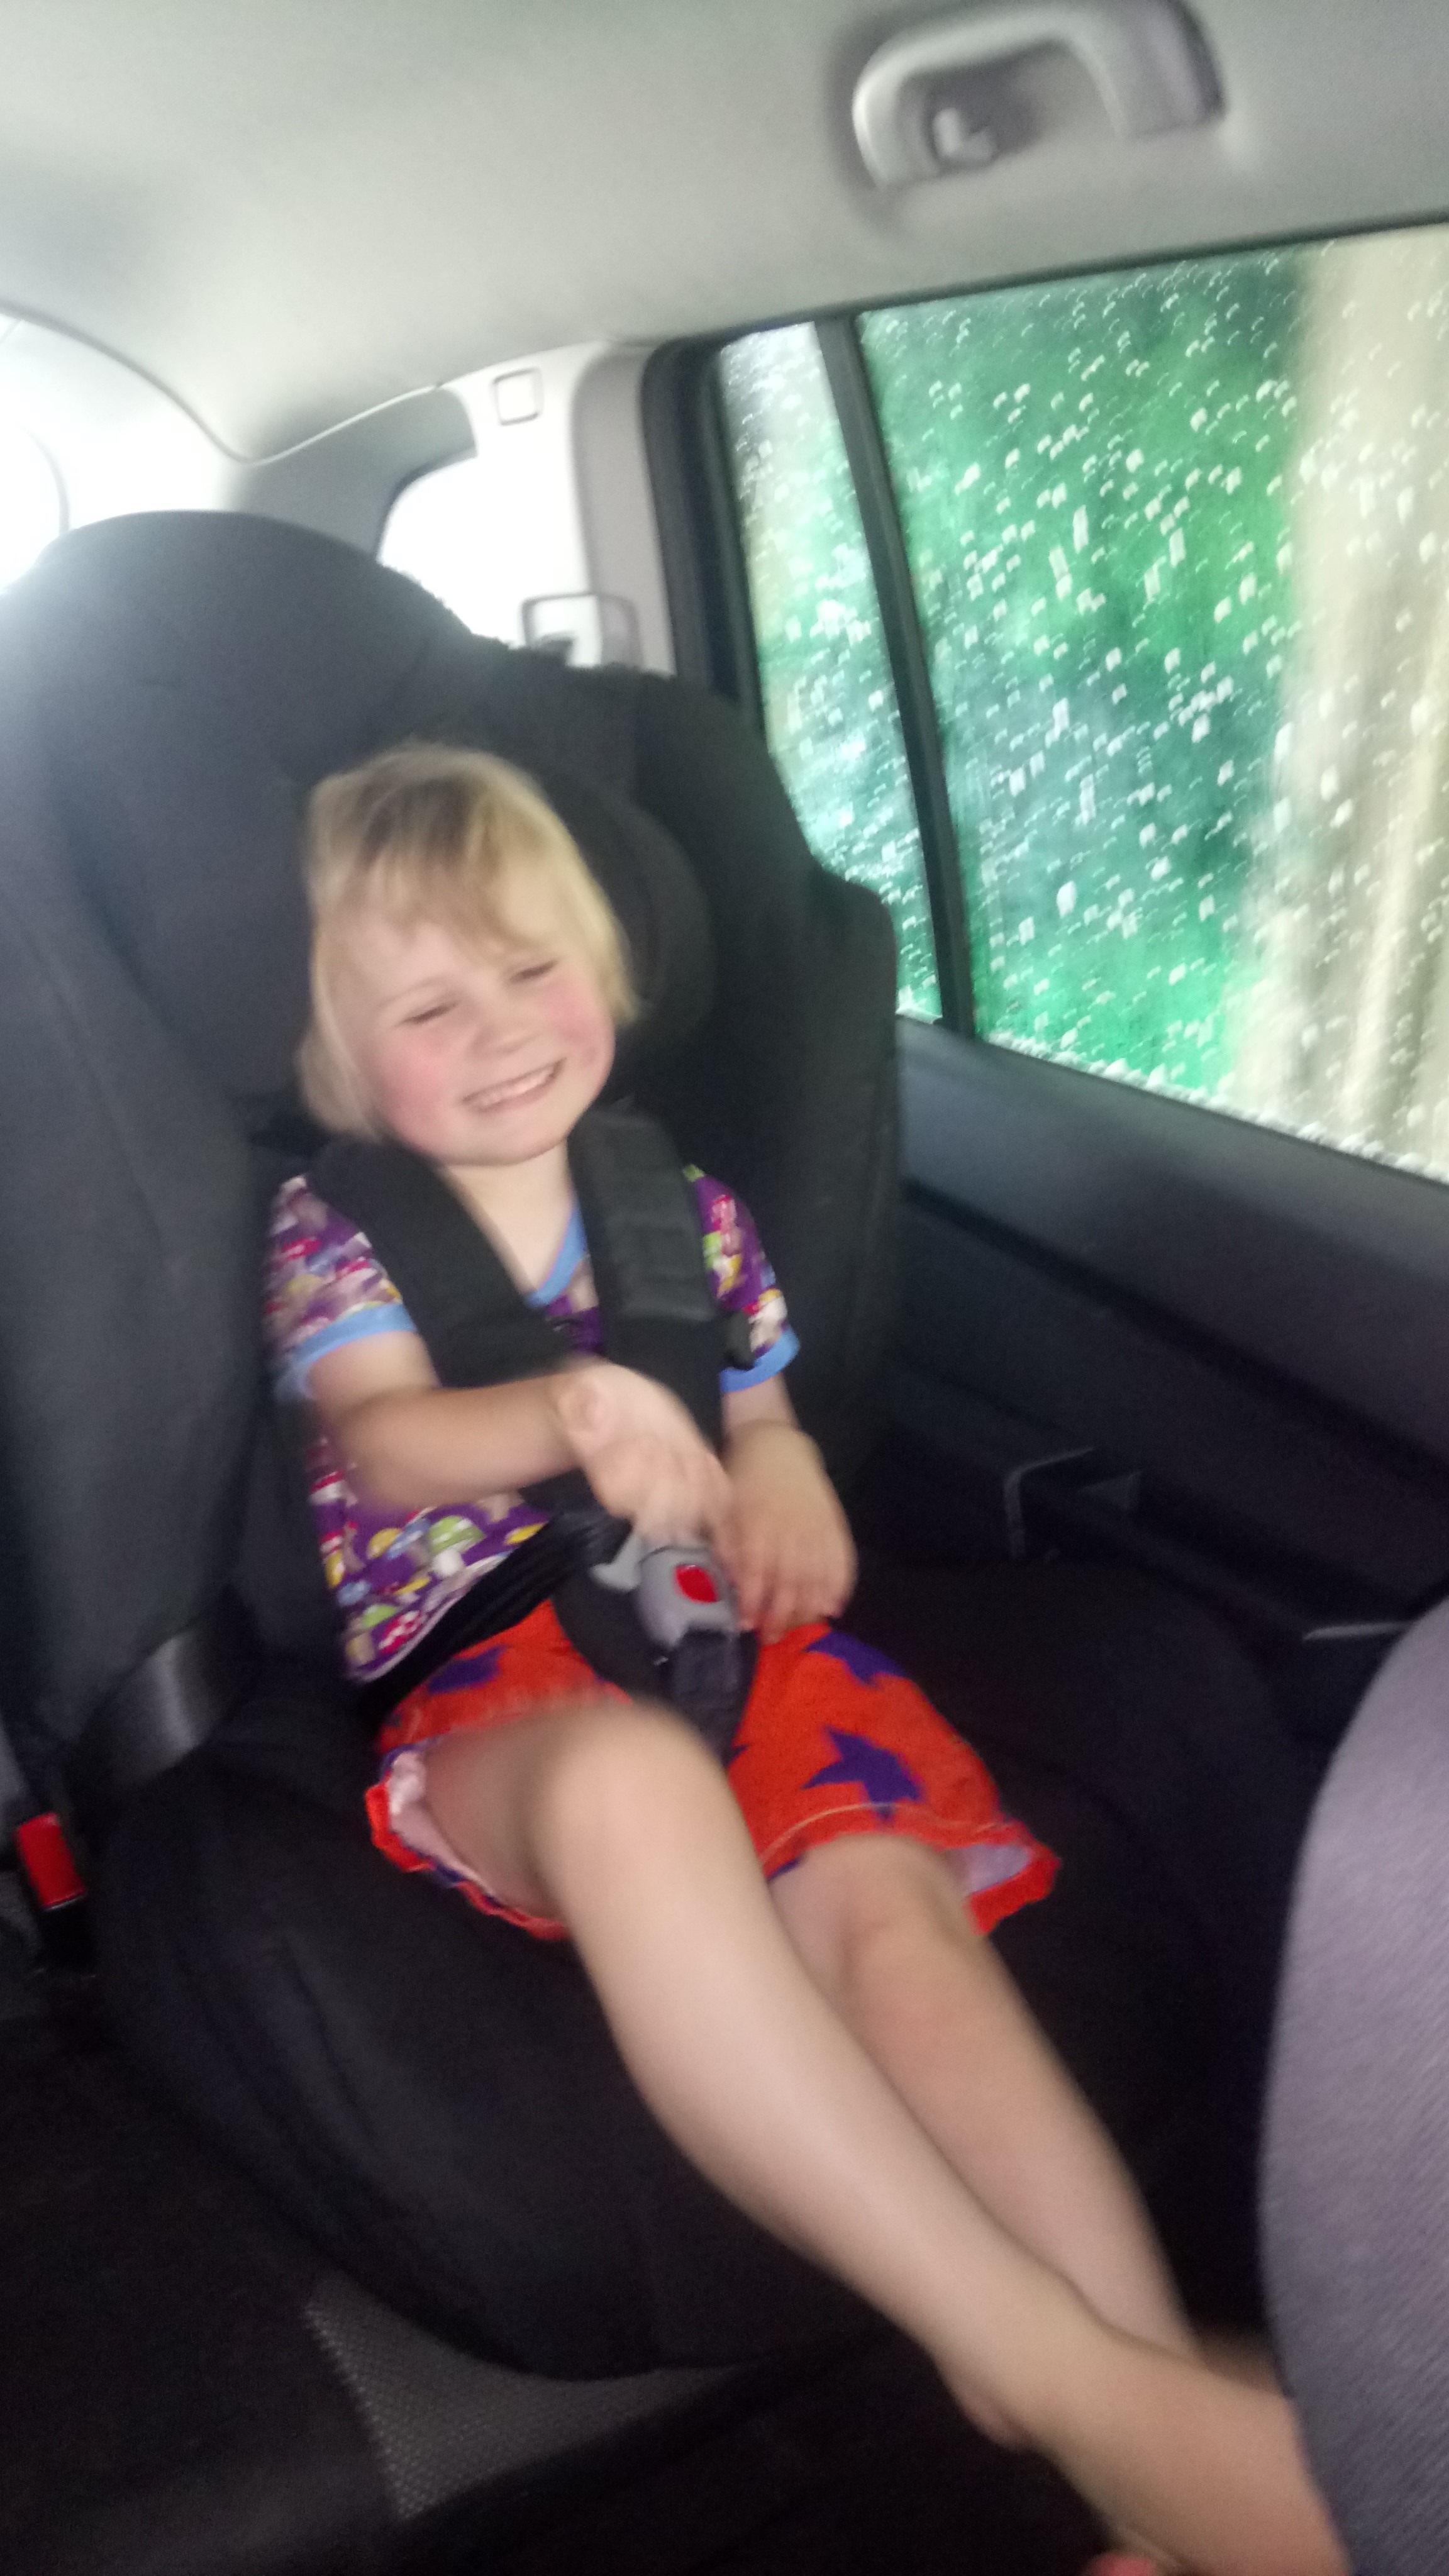 SPECIALIST EQUIPMENT FOR A SPECIAL FIVE-YEAR-OLD - Newlife Charity News